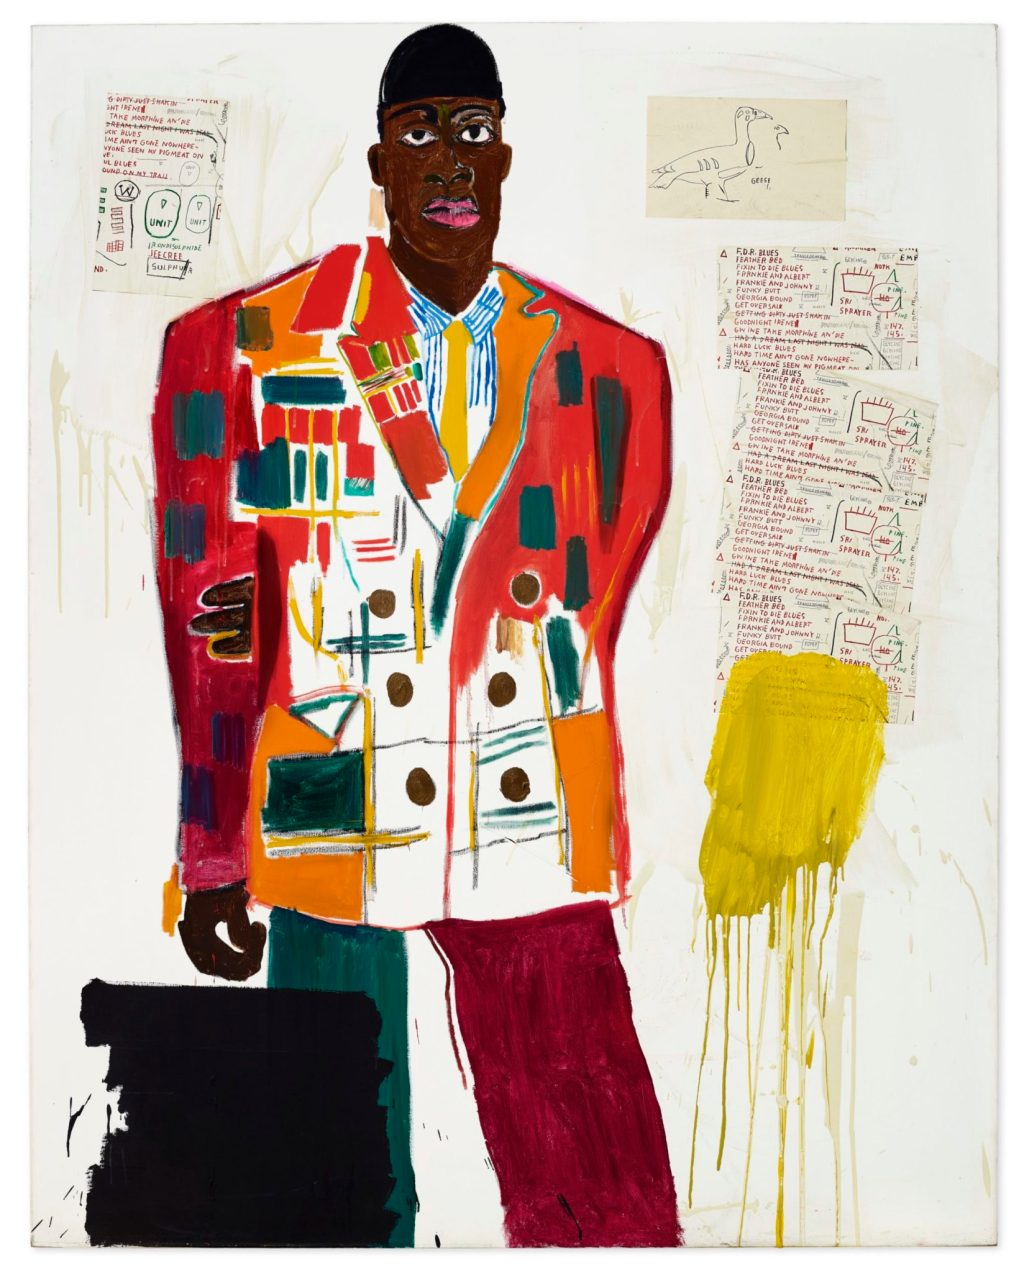 A Rare Basquiat is Headed to Christie's, Academy Museum of Motion Pictures to Open in April and More: Morning Links from September 11, 2020